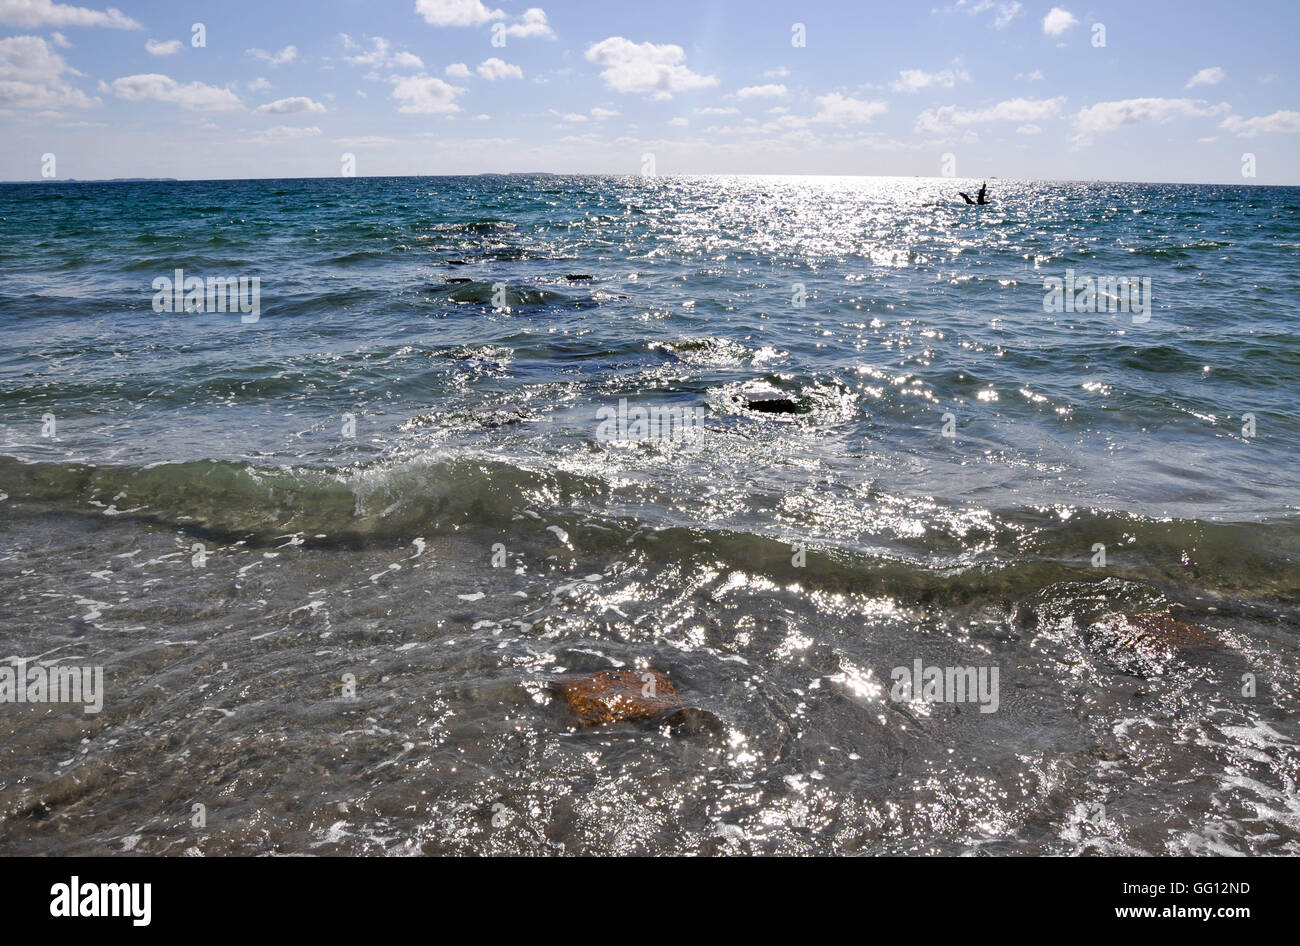 Glistening Indian Ocean seascape under a blue sky at the North Coogee Beach in Western Australia. - Stock Image